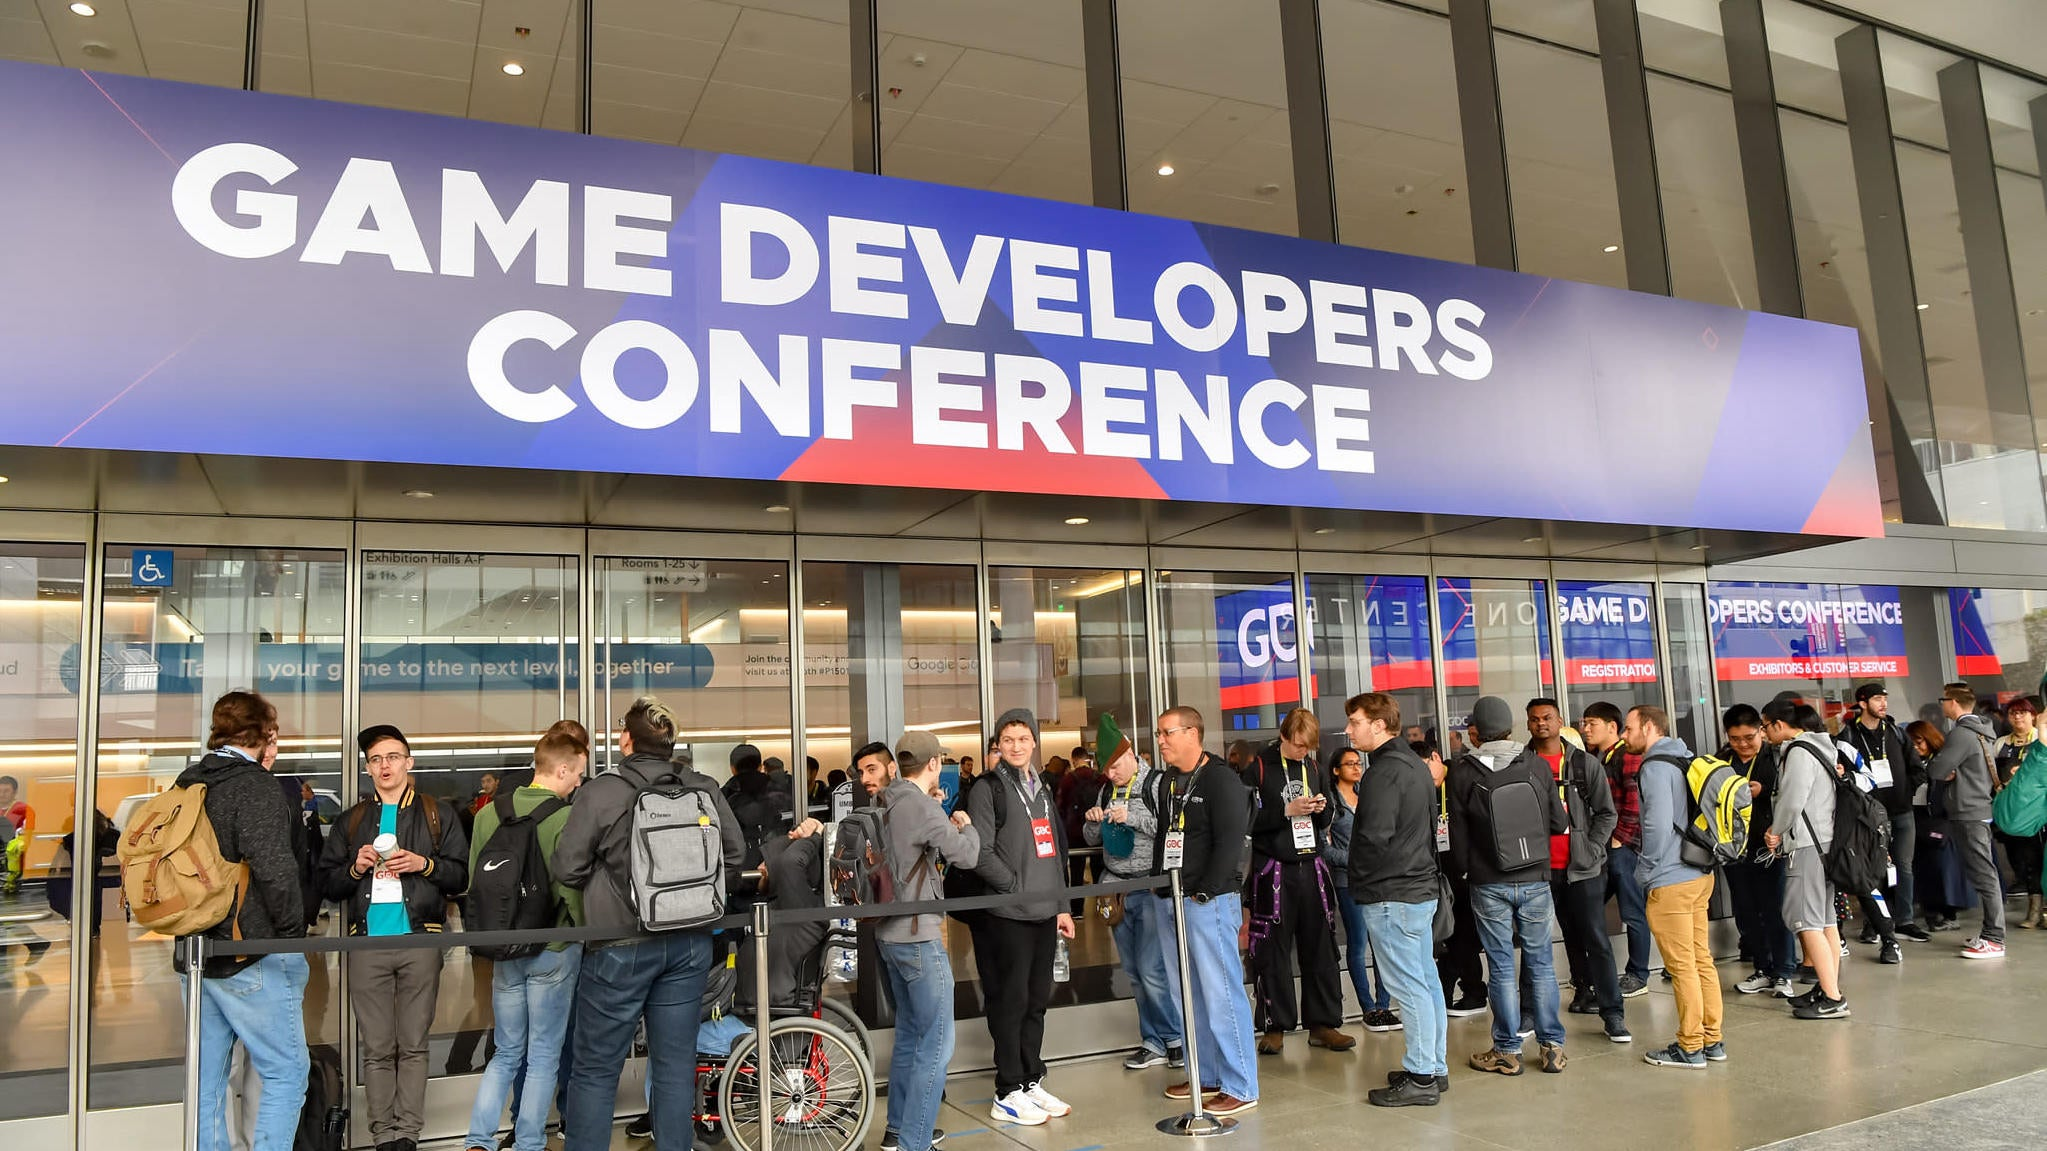 Game Developers Conference Has Been 'Postponed'